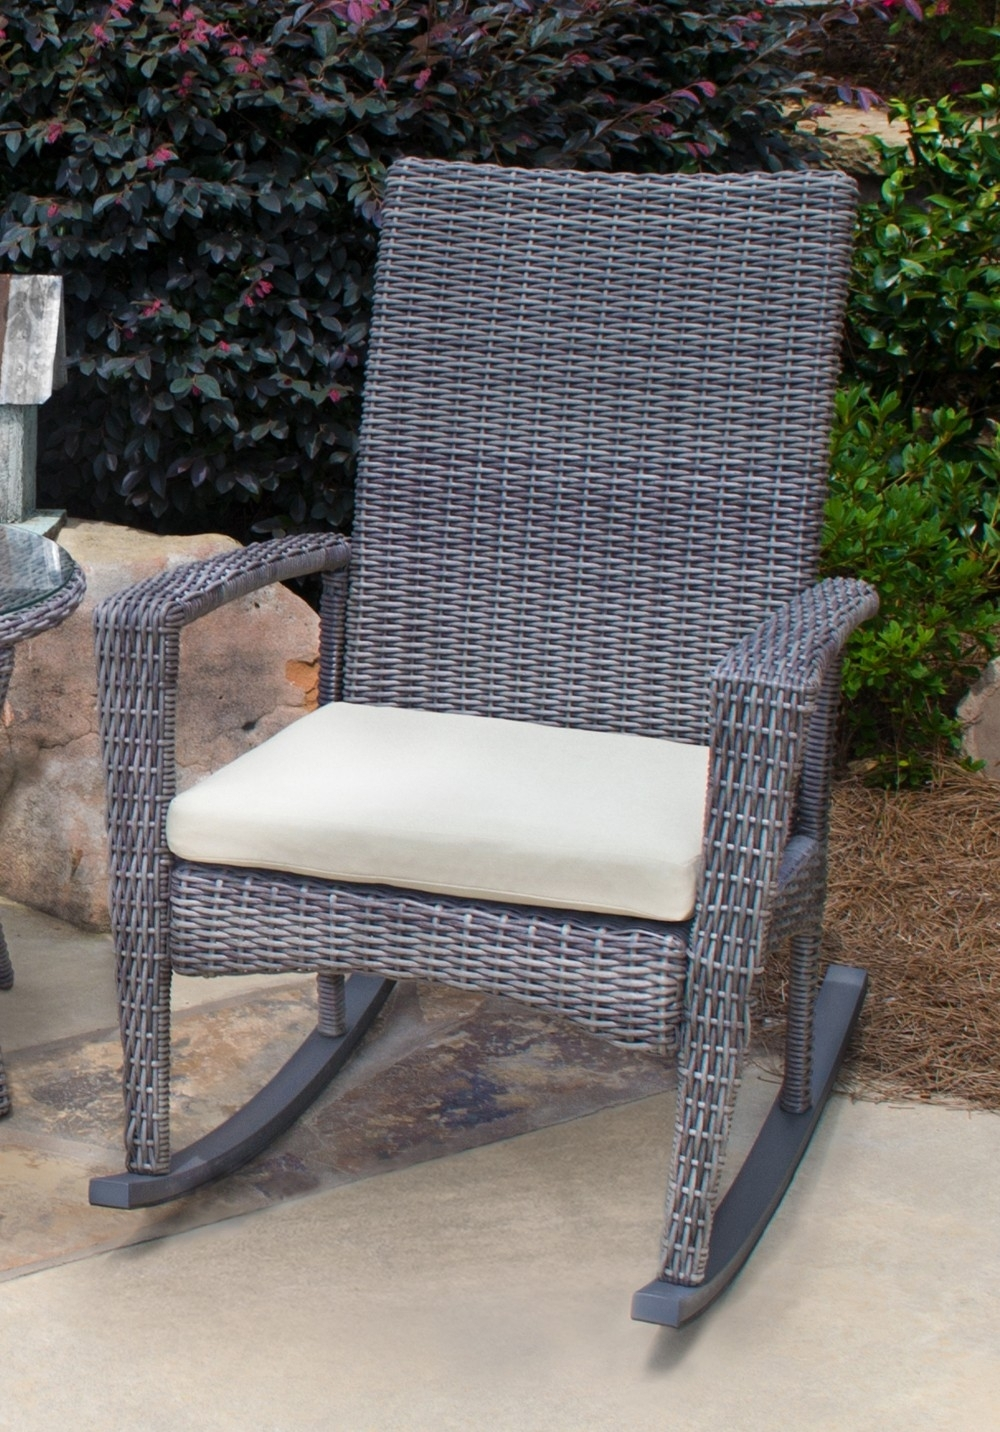 Chair | Hardwood Rocking Chair Wicker Rocker Patio Furniture Outdoor Intended For Wicker Rocking Chairs Sets (#2 of 15)